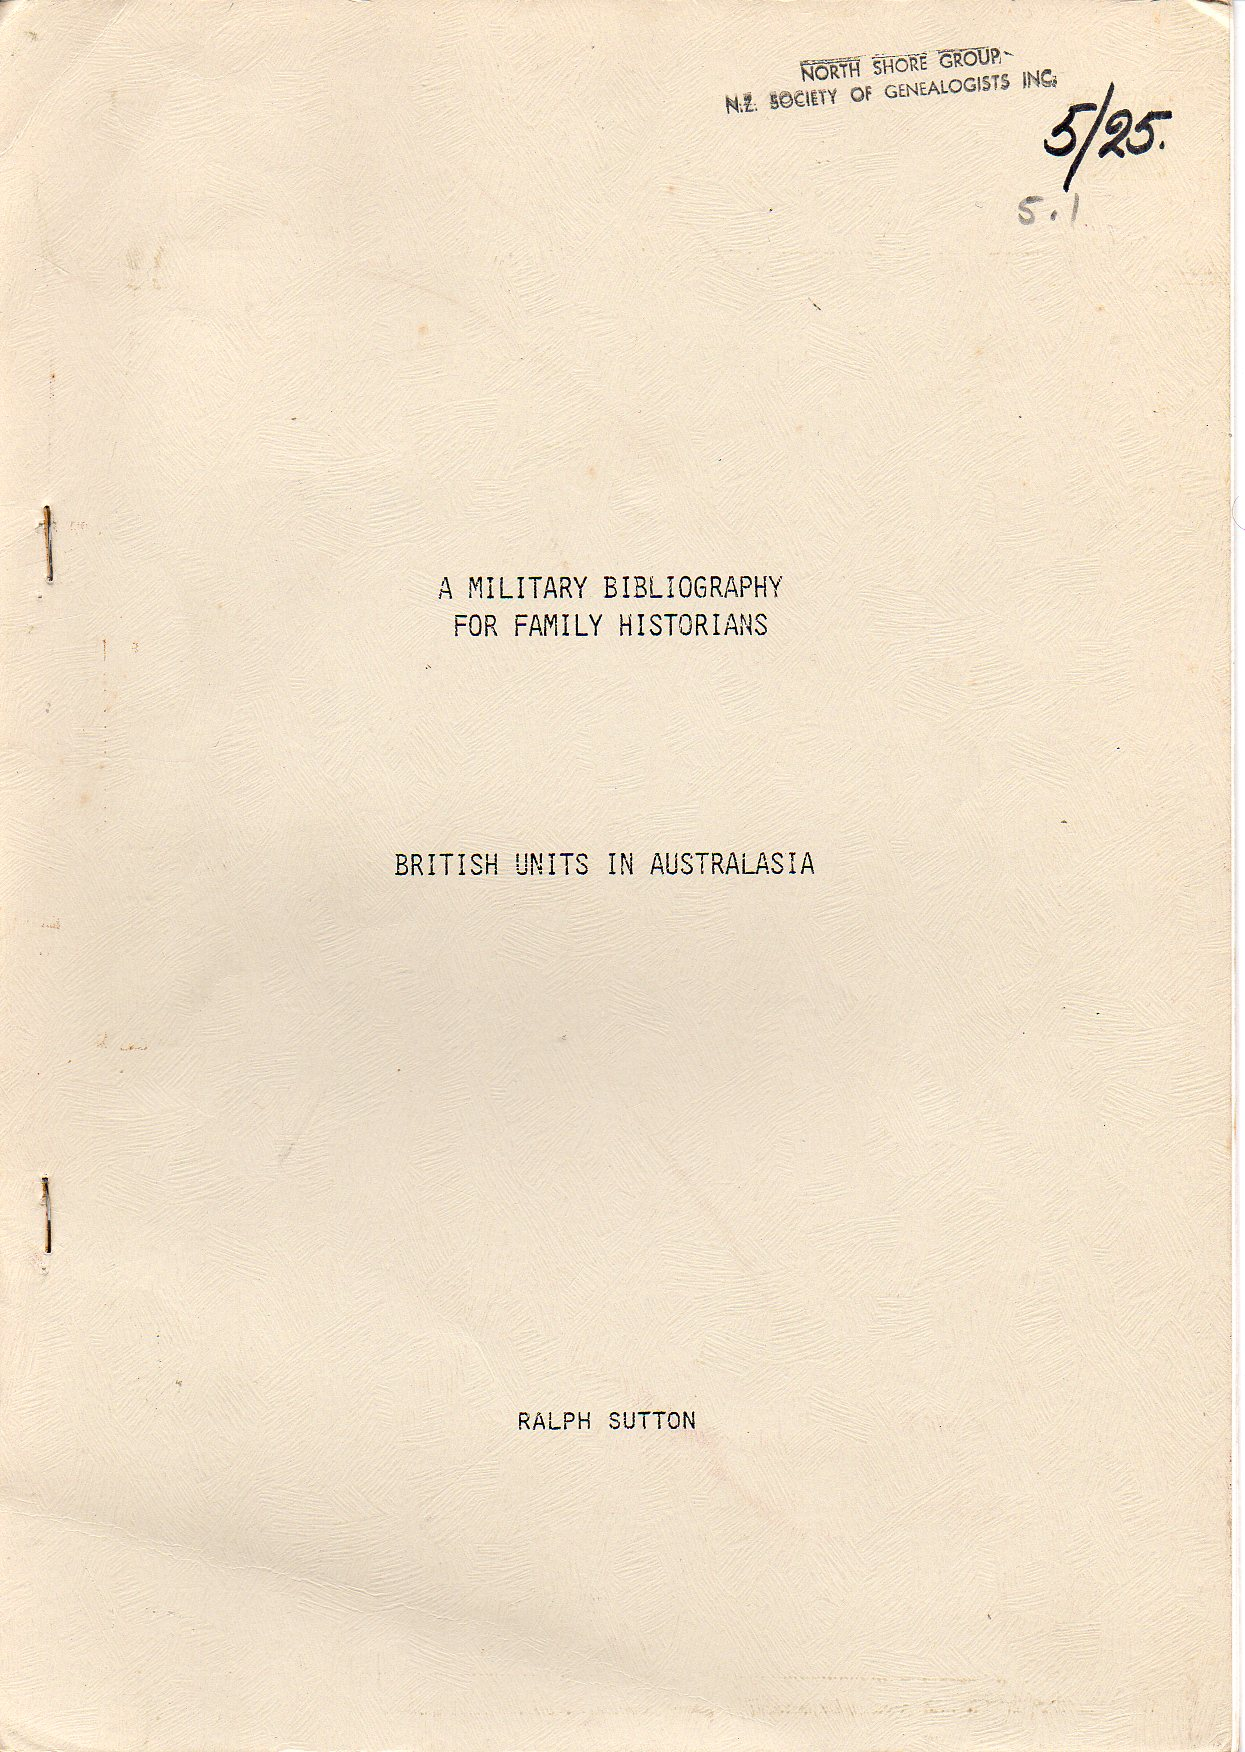 Image for British Units in Australasia - A Military Bibliography for Family Historians